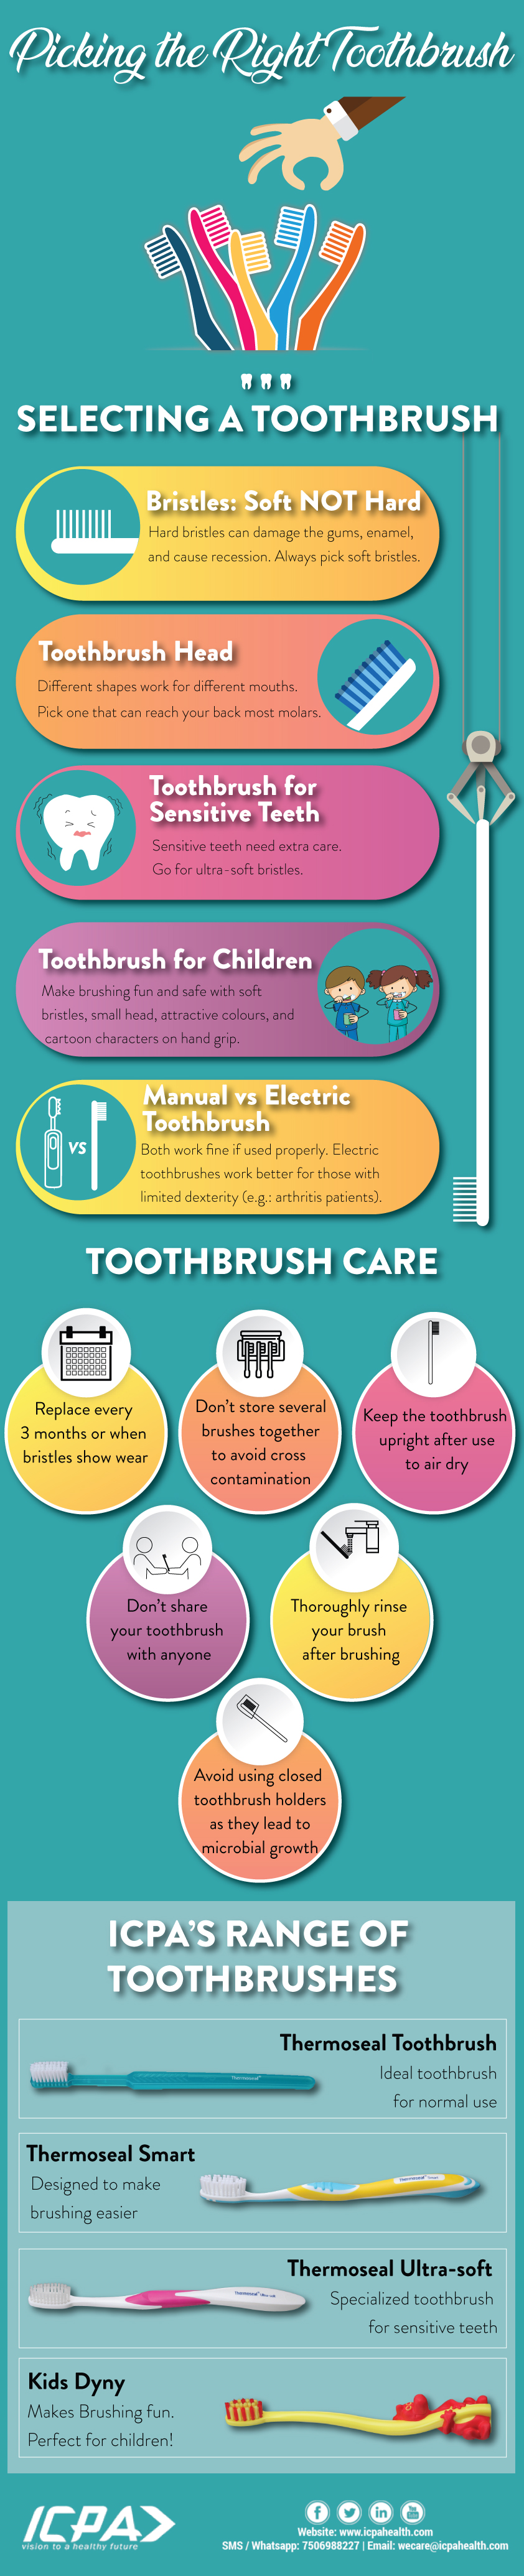 How to choose your Toothbrush [Infographic]